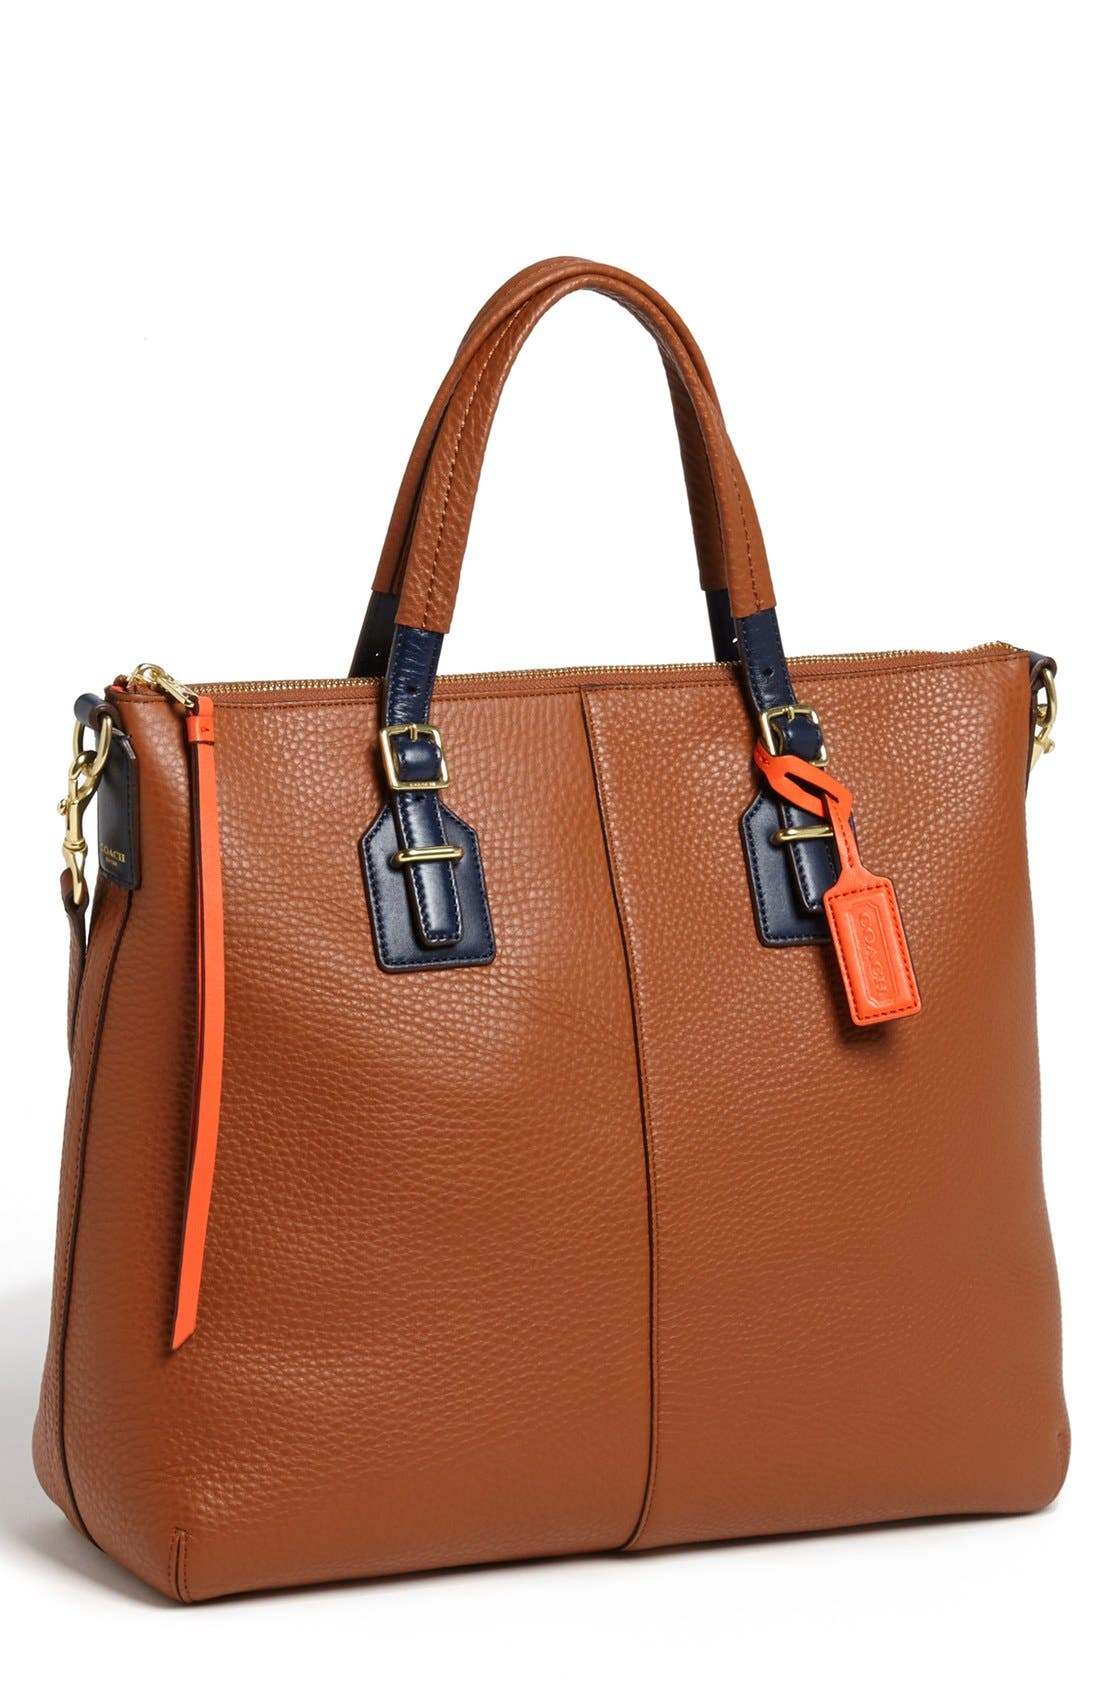 Alternate Image 1 Selected - COACH 'Legacy Dream - Rory' Leather Satchel